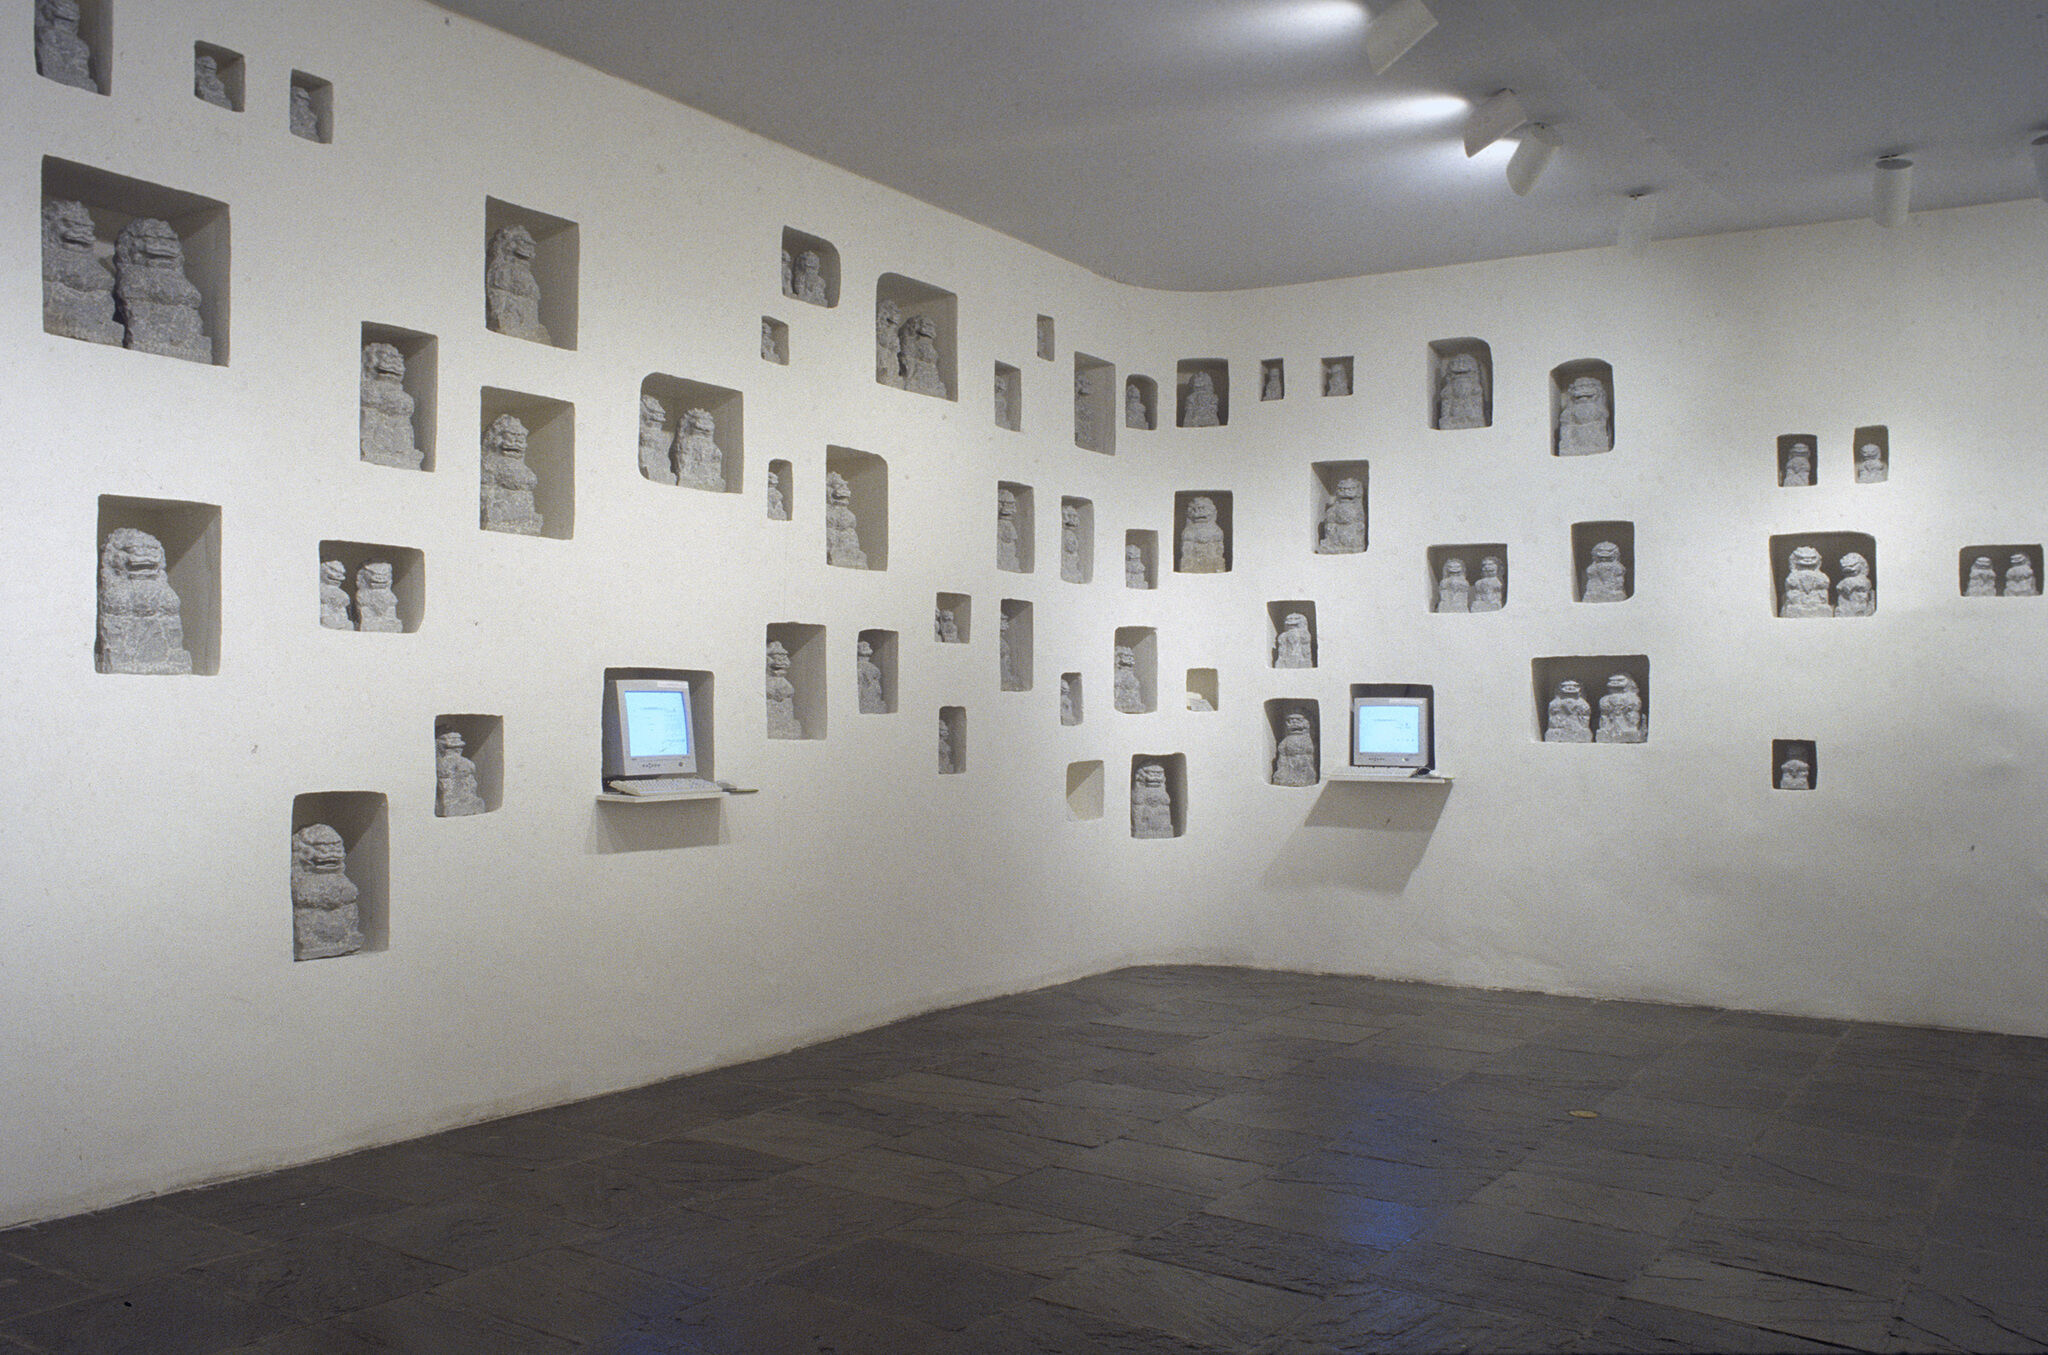 A gallery with sculptures and two small monitors displayed inside the walls.